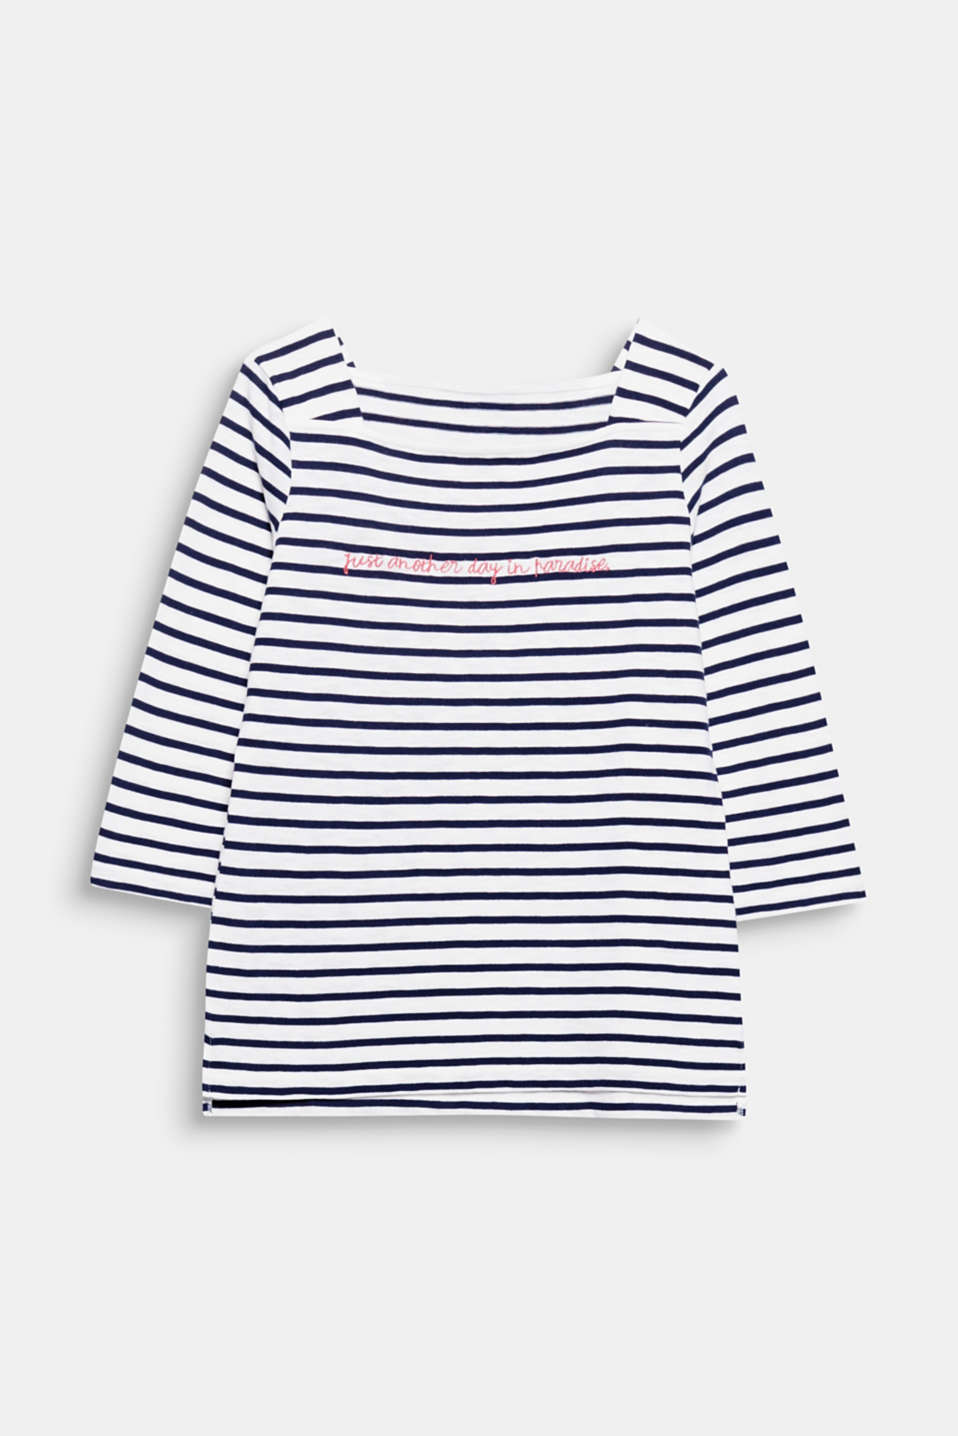 Just another day in paradise! This top stands out thanks to its fresh stripes, pure cotton and embroidered slogan.